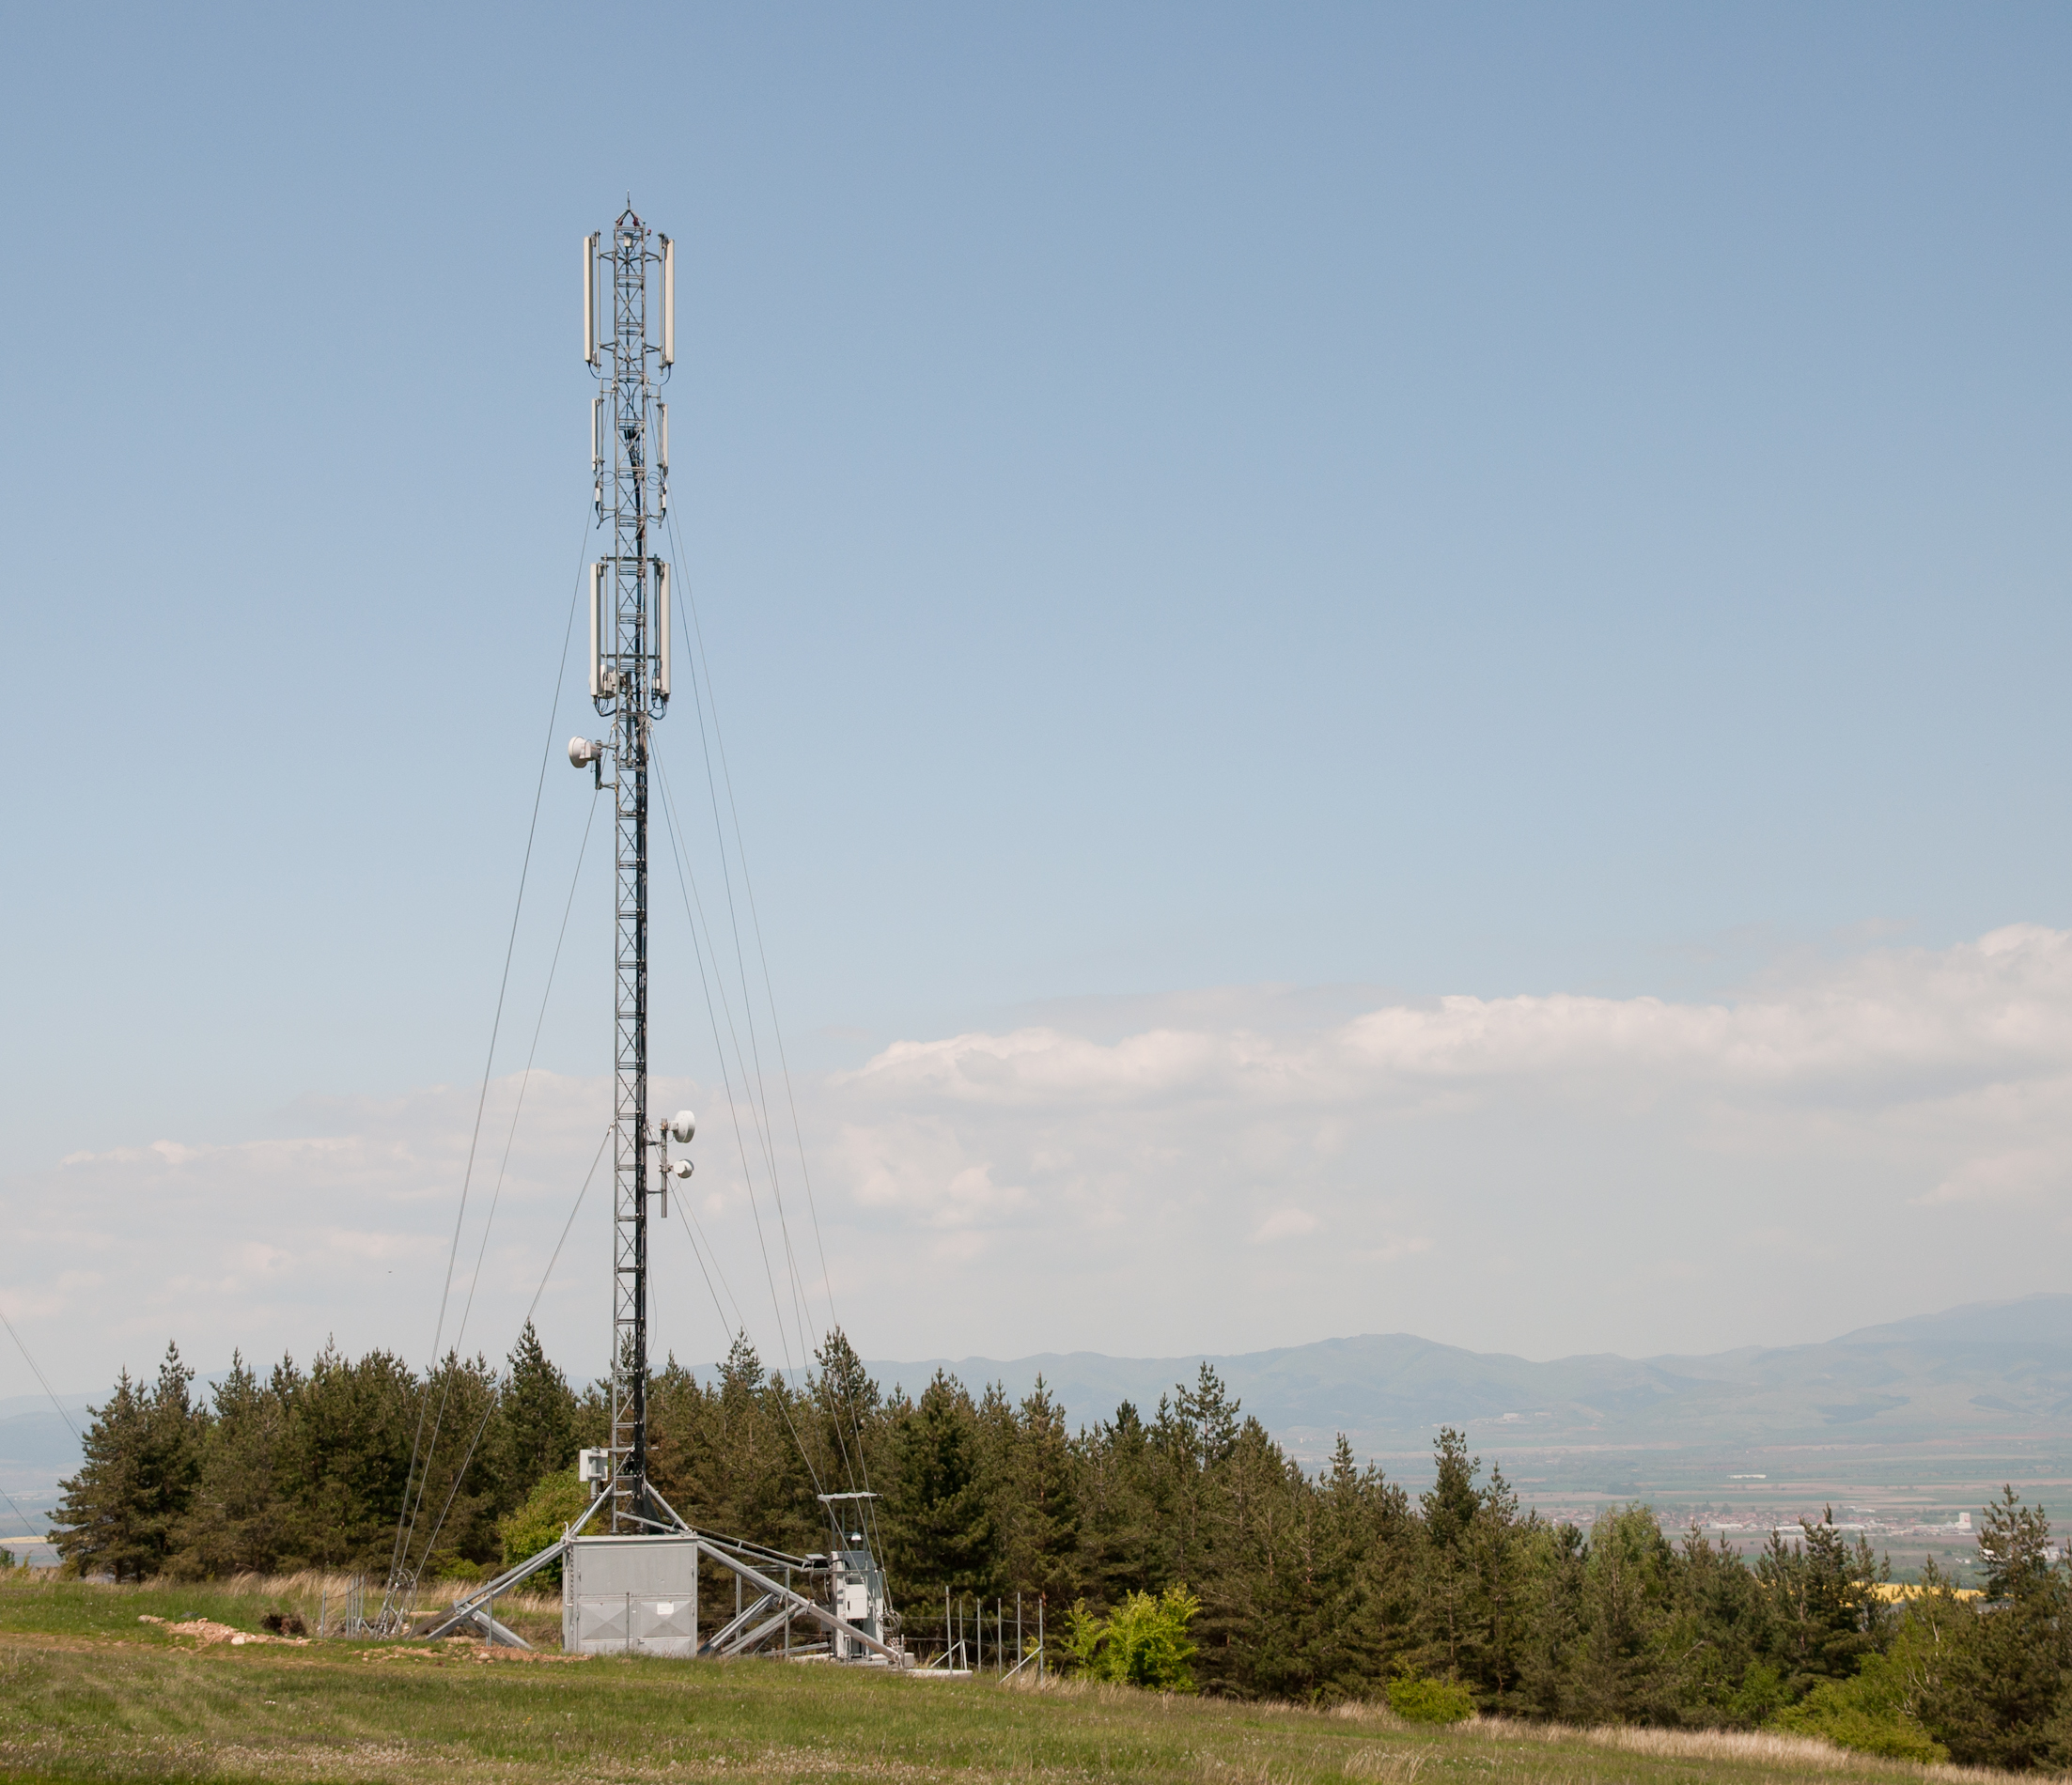 Cell-phone-tower-near-Lozen-Bulgaria-Aviat-Networks-network-solutions-architect-Hadi-Choueiry-recounts-3-TDM-to-IP-lessons-learned-18Oct13